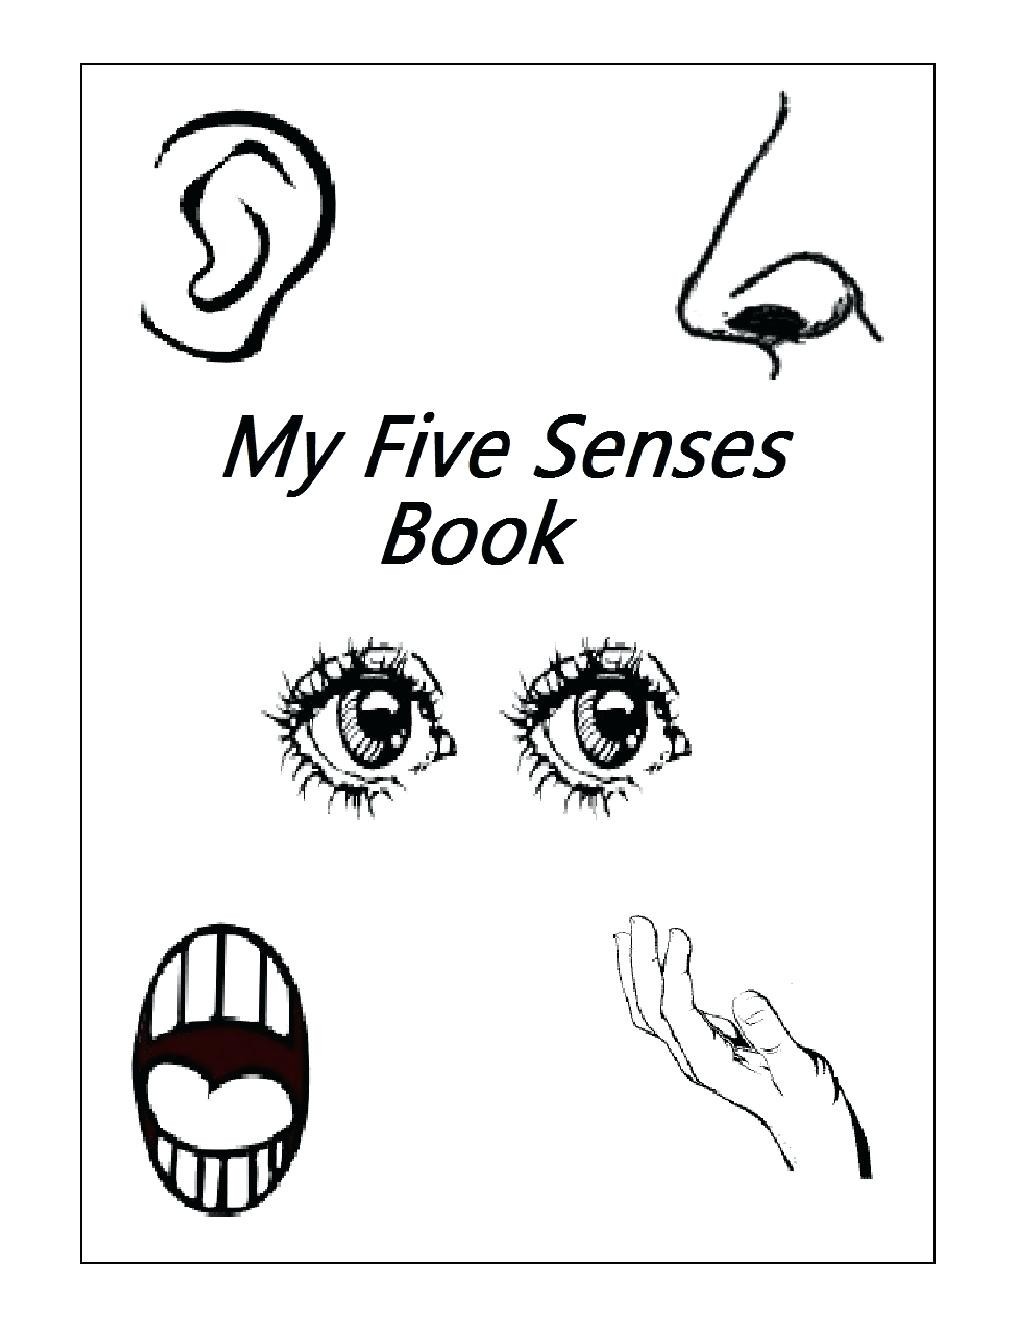 Five Senses Kindergarten Worksheet Free Printable Worksheets for Preschool Pdf Clover Hatunisi